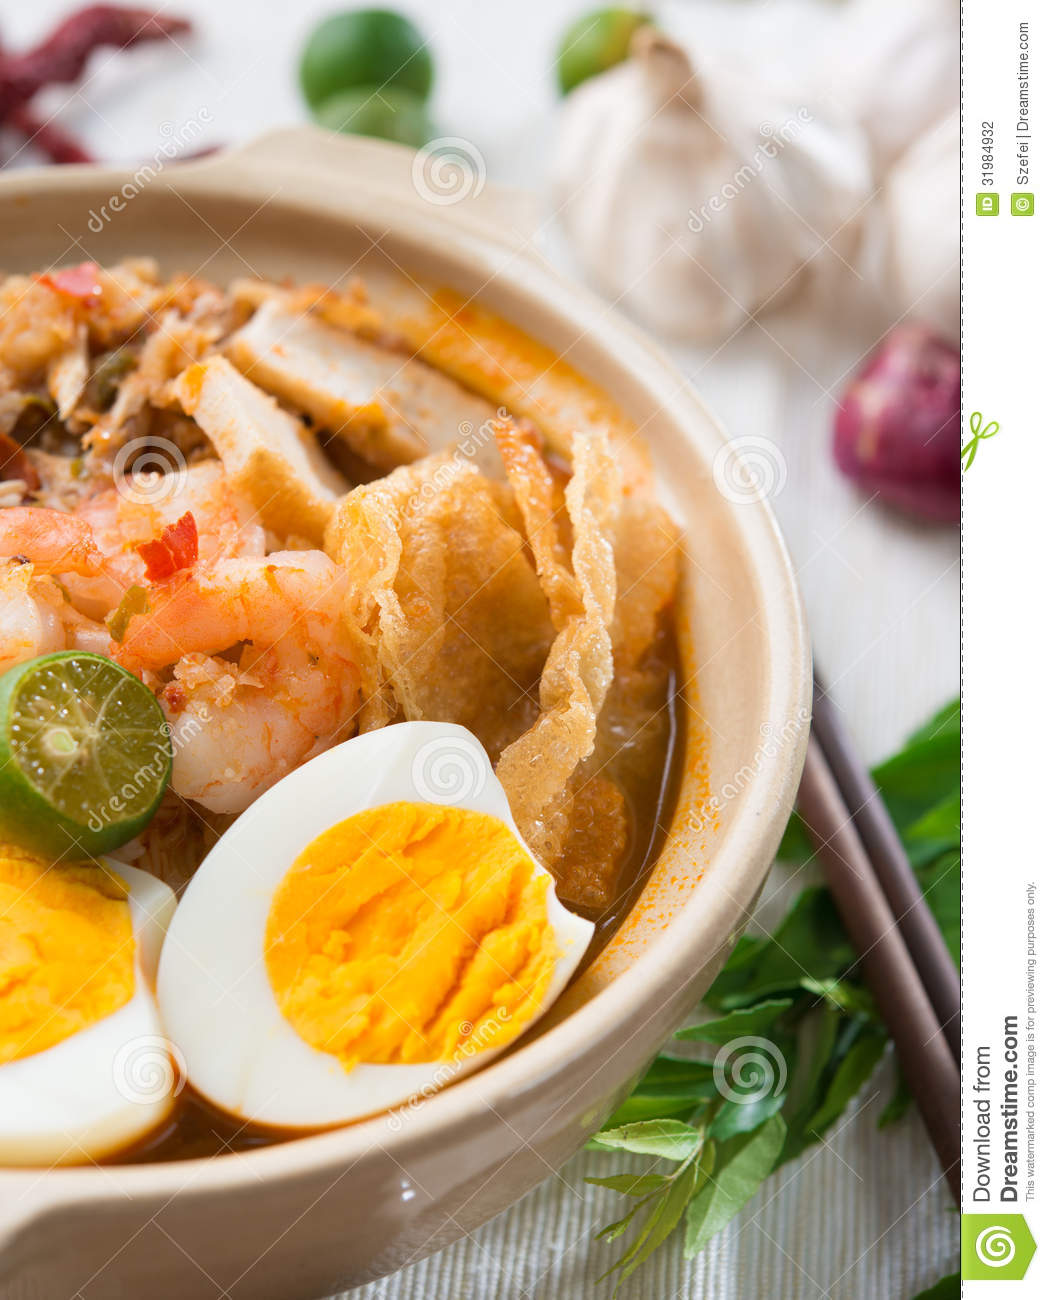 Prawn noodles stock photography image 31984932 for Asian cuisine singapore